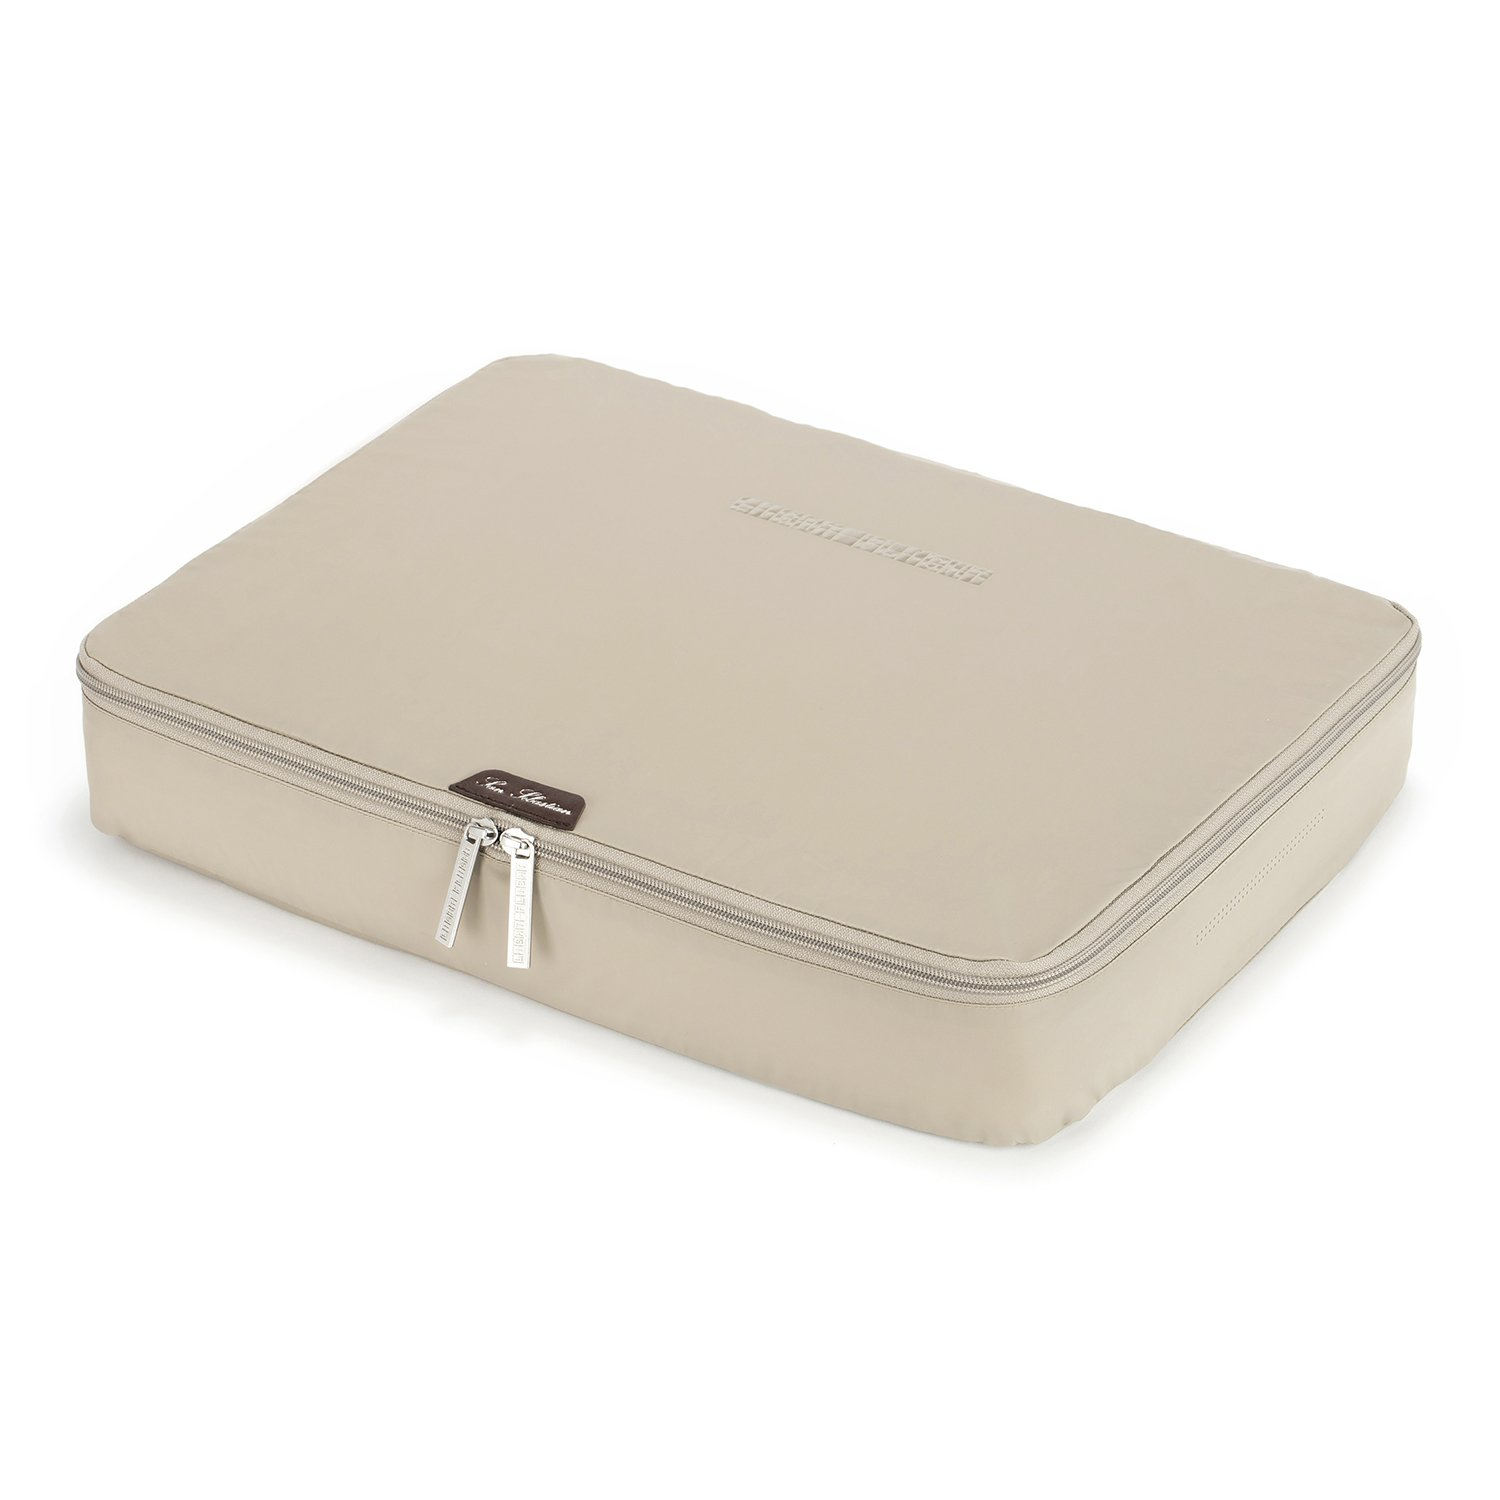 LIGHT FLIGHT 17'' Packing Folder Anti-wrinkle Shirt Travel Packing Cube and Luggage Accessory, Beige